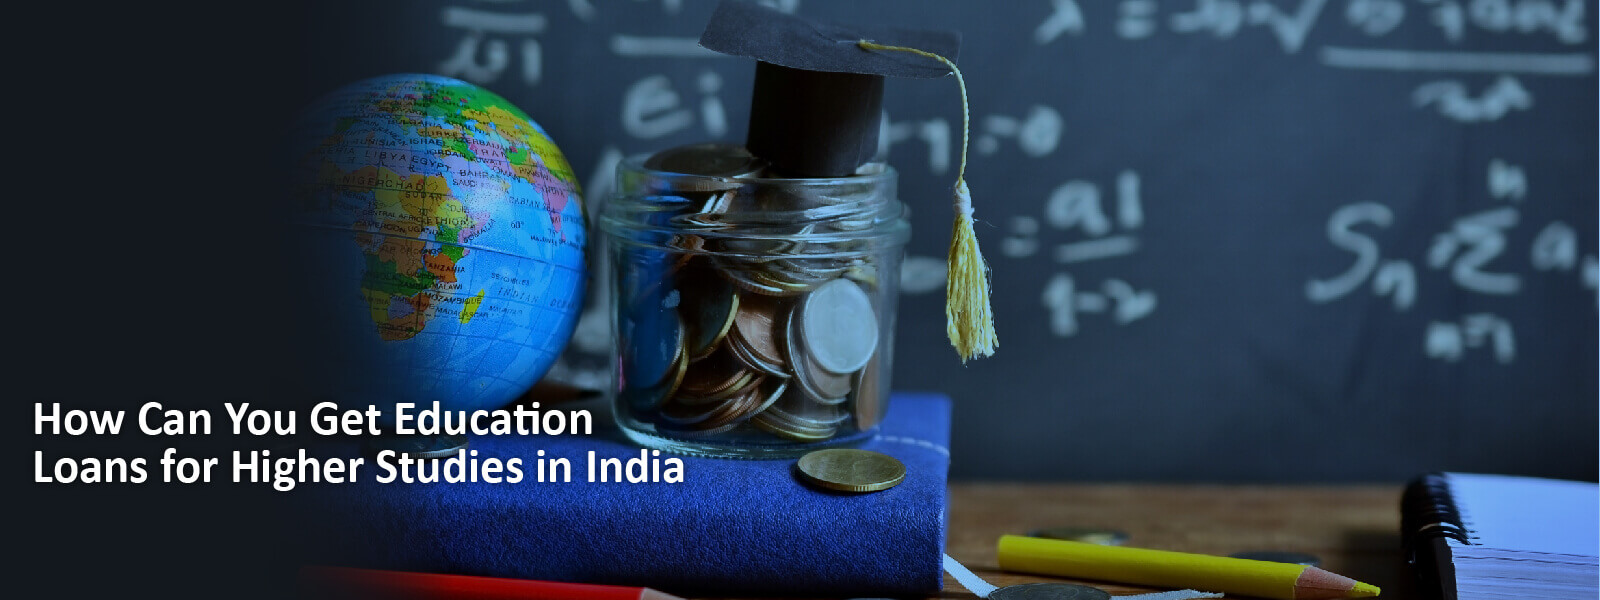 How can you Get Educational Loans for Higher Studies in India?